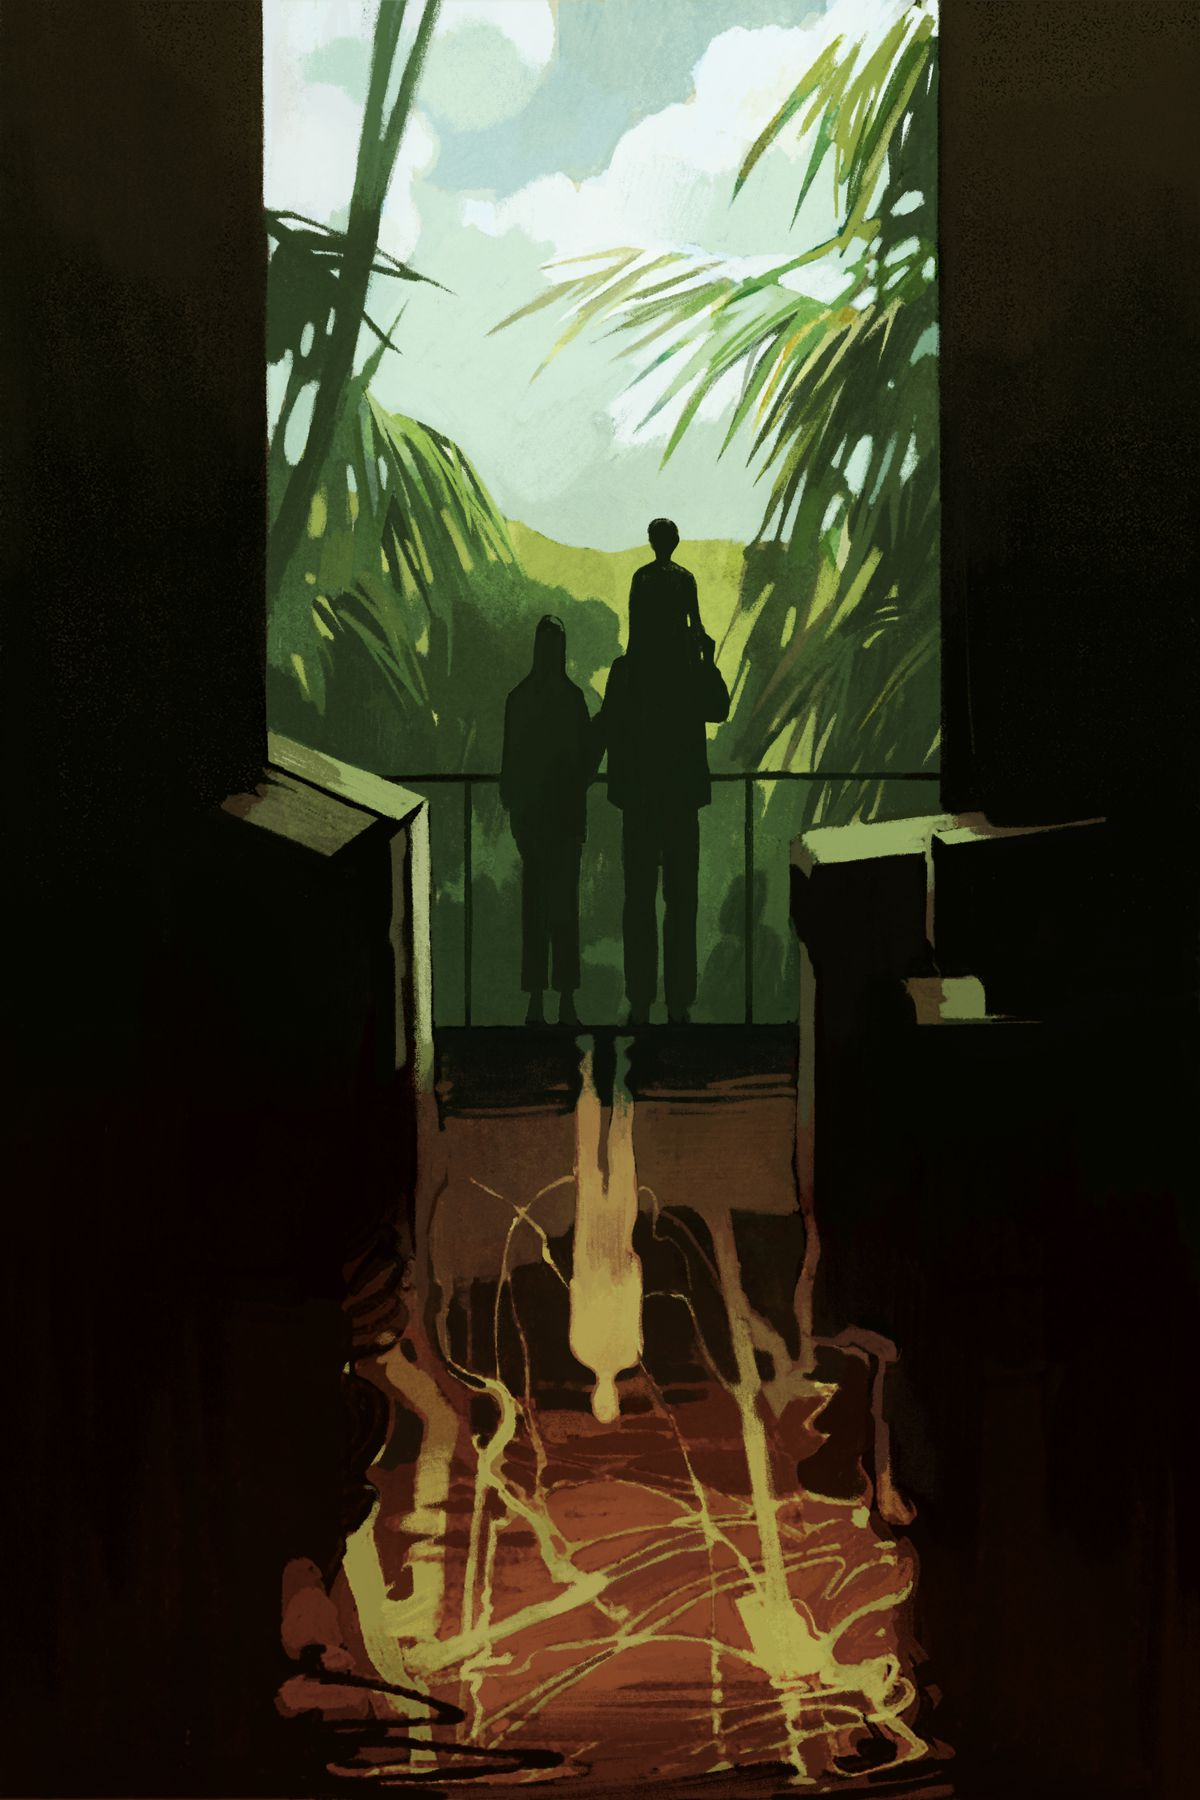 Family overlook green verdant landscape with dark brown dystopia reflected beneath them